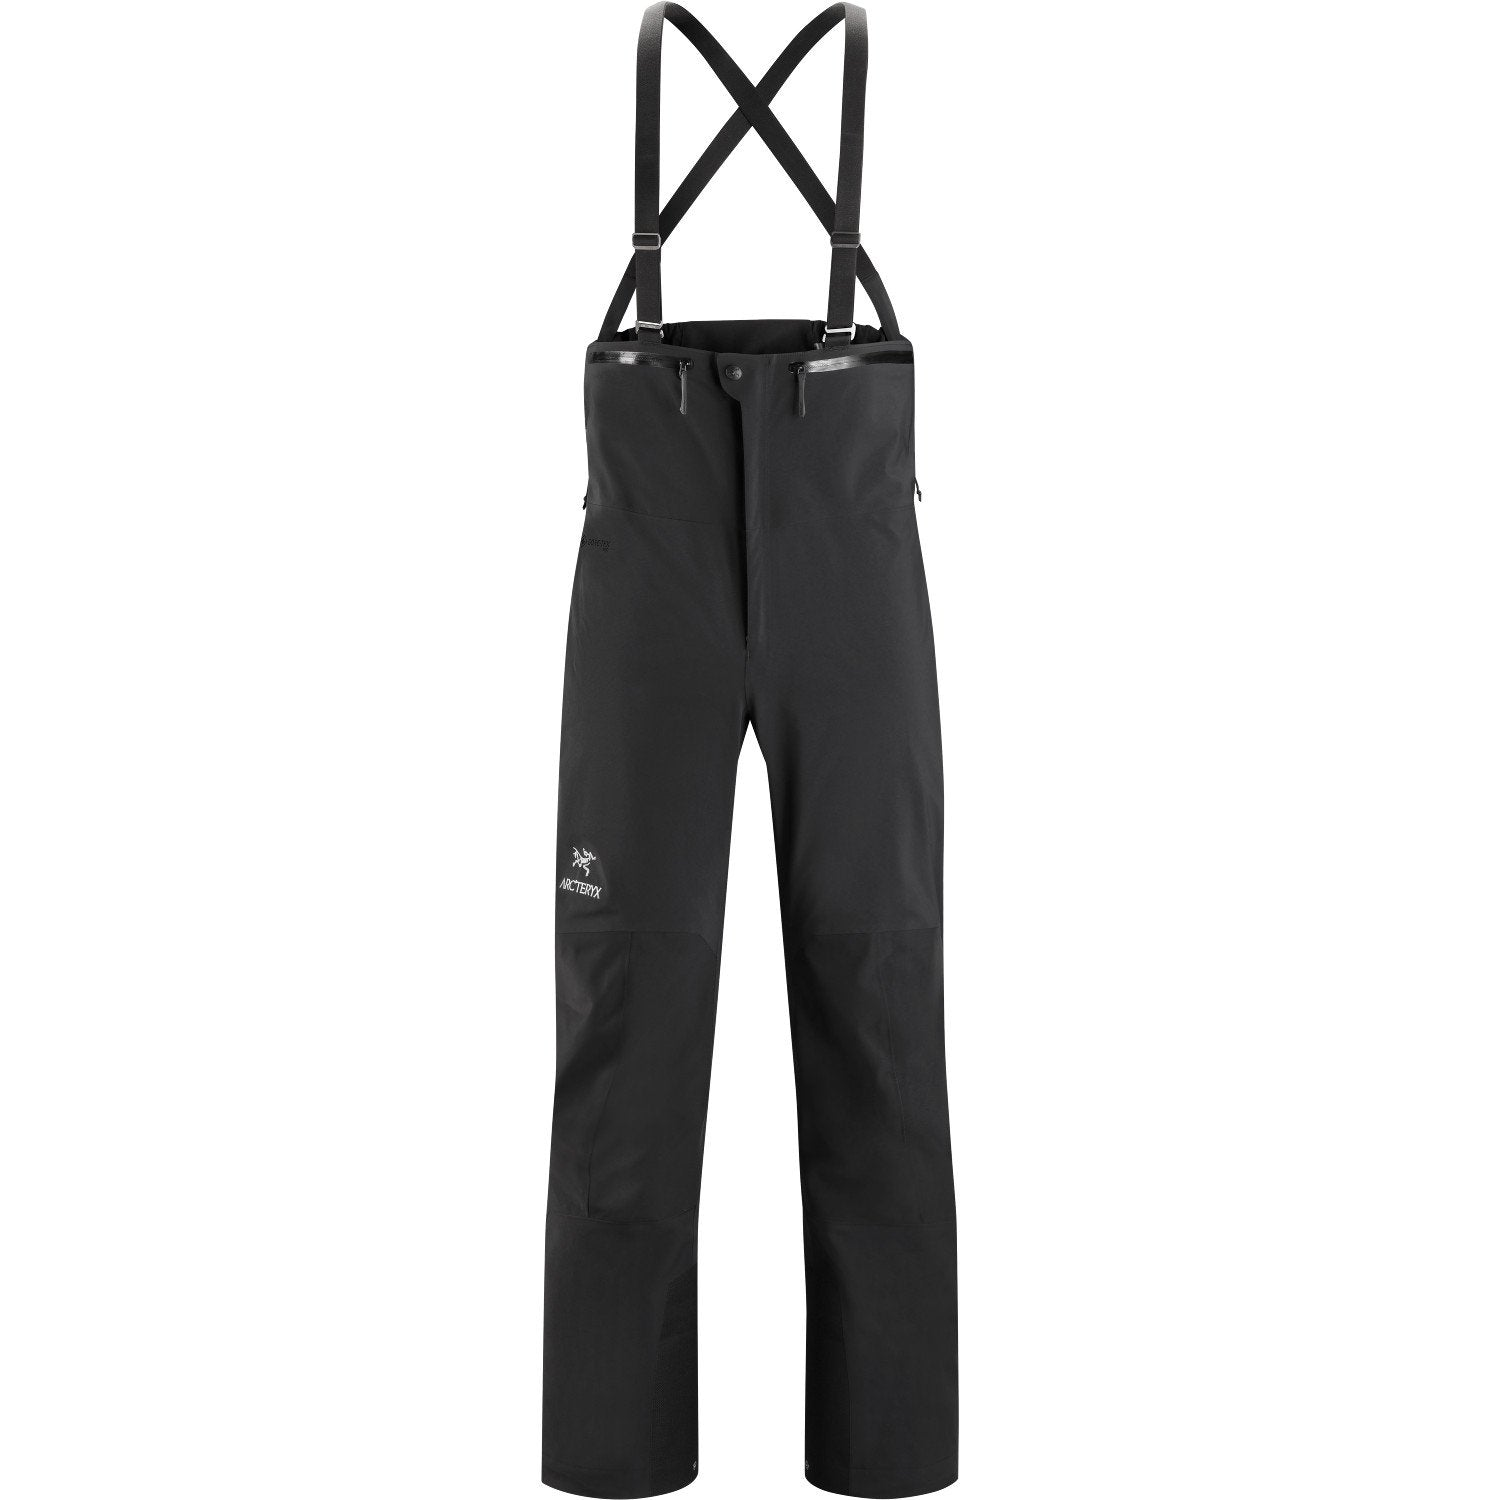 Front view of the ArcTeryx Beta SV Bib pant in Black colour